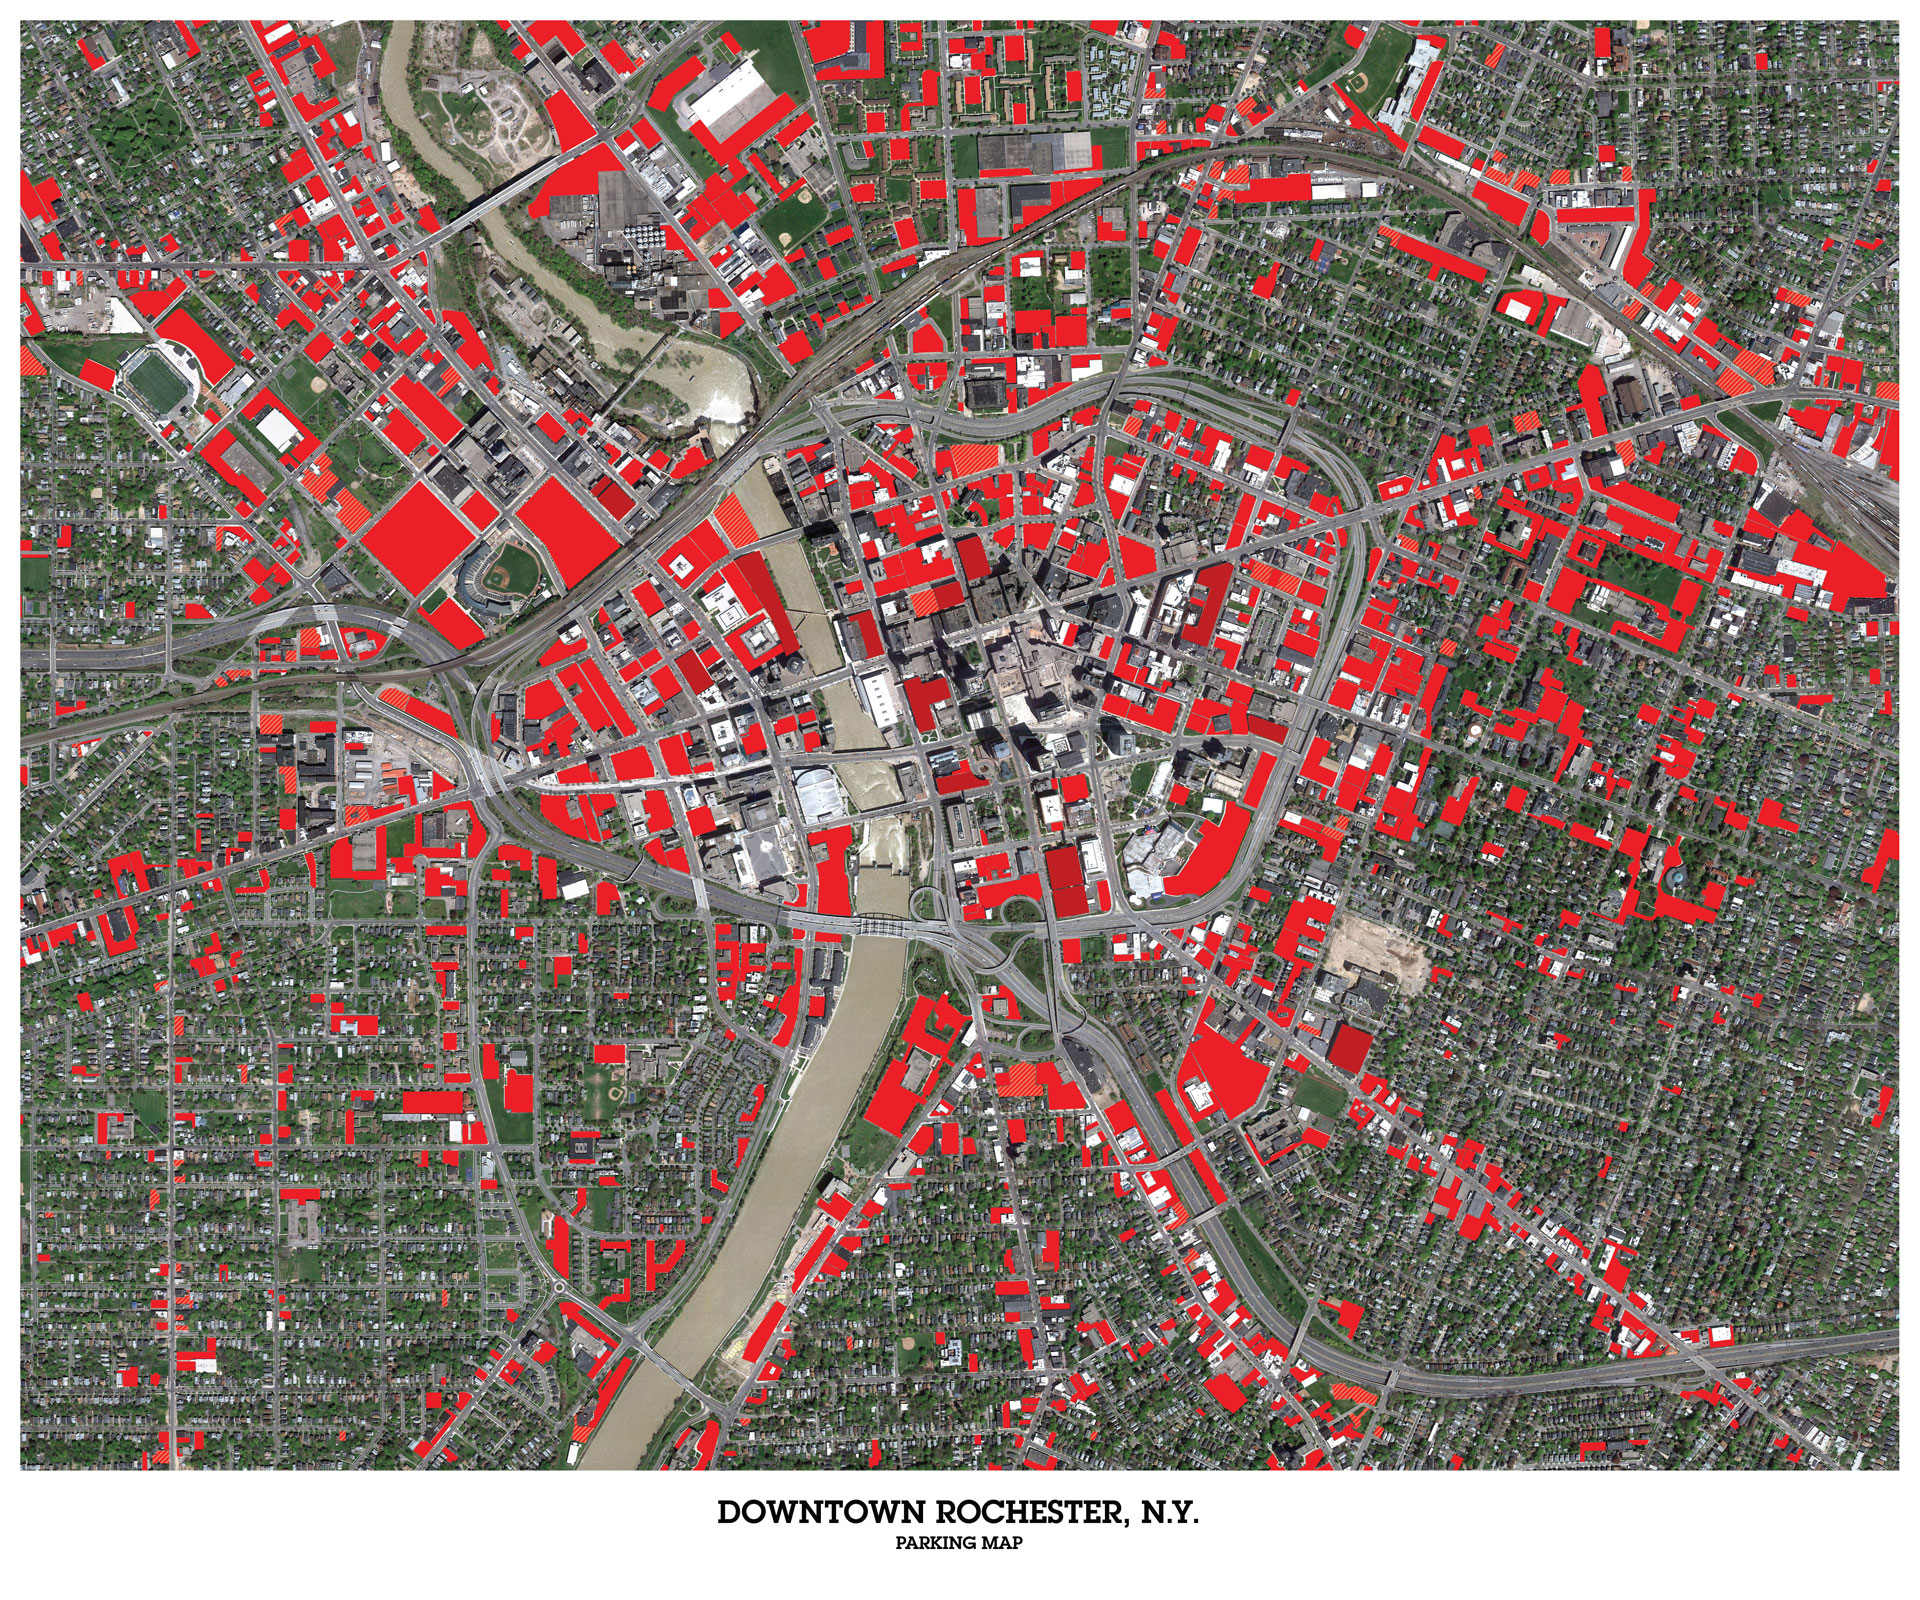 Downtown Rochester, N.Y. satellite view of parking areas.